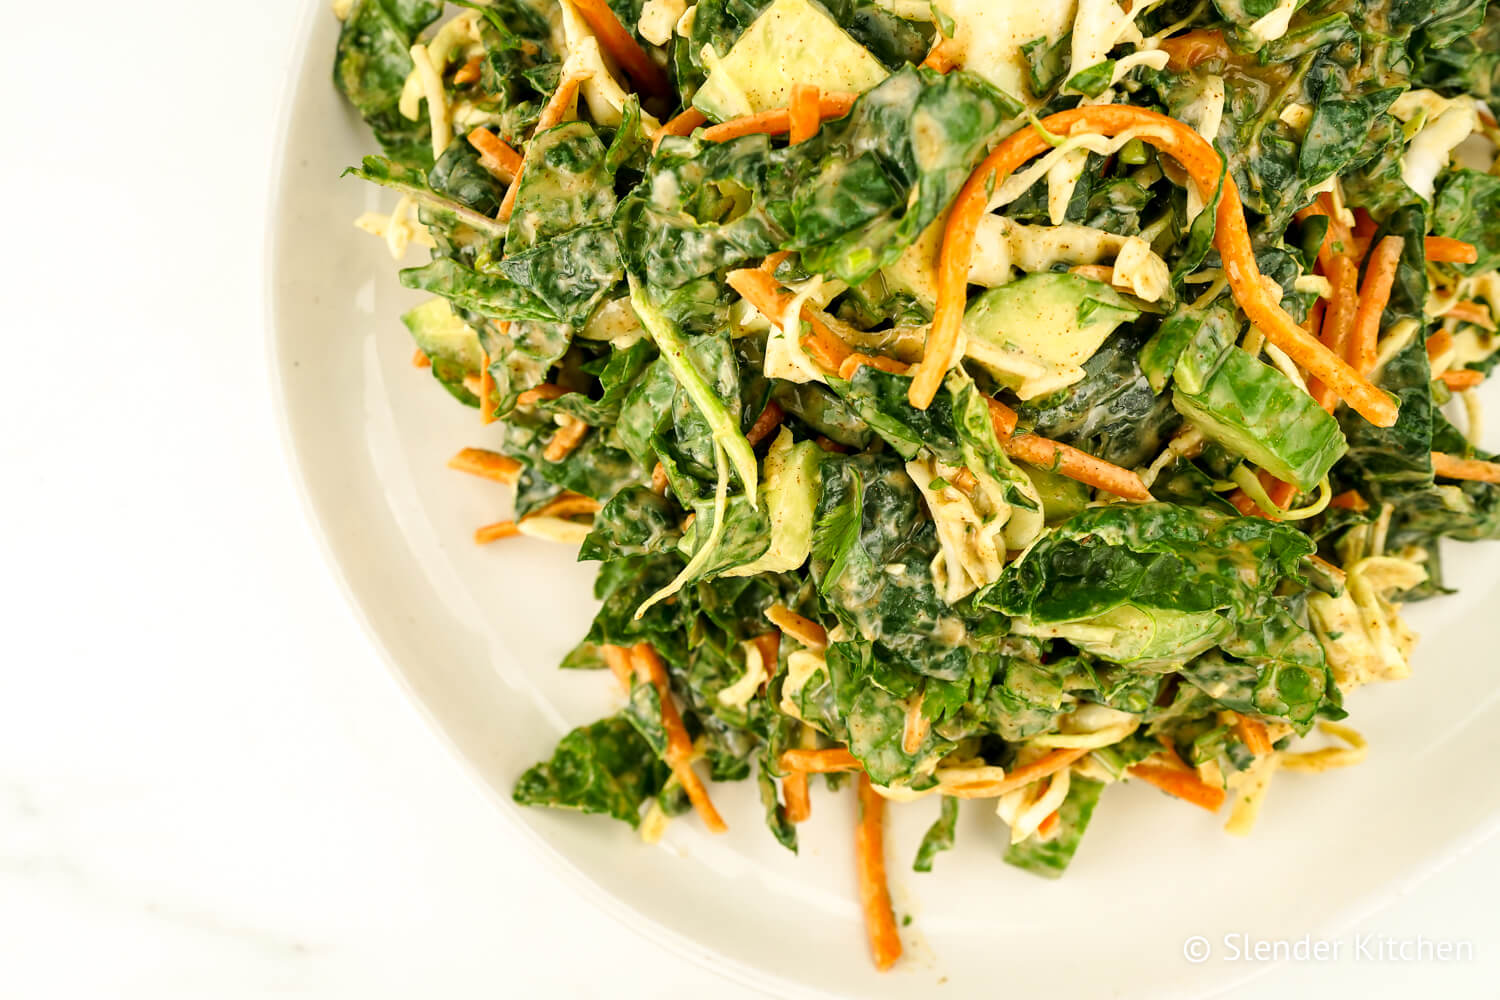 Kale slaw with apples, cucumbers, and fresh herbs on a white ceramic plate.